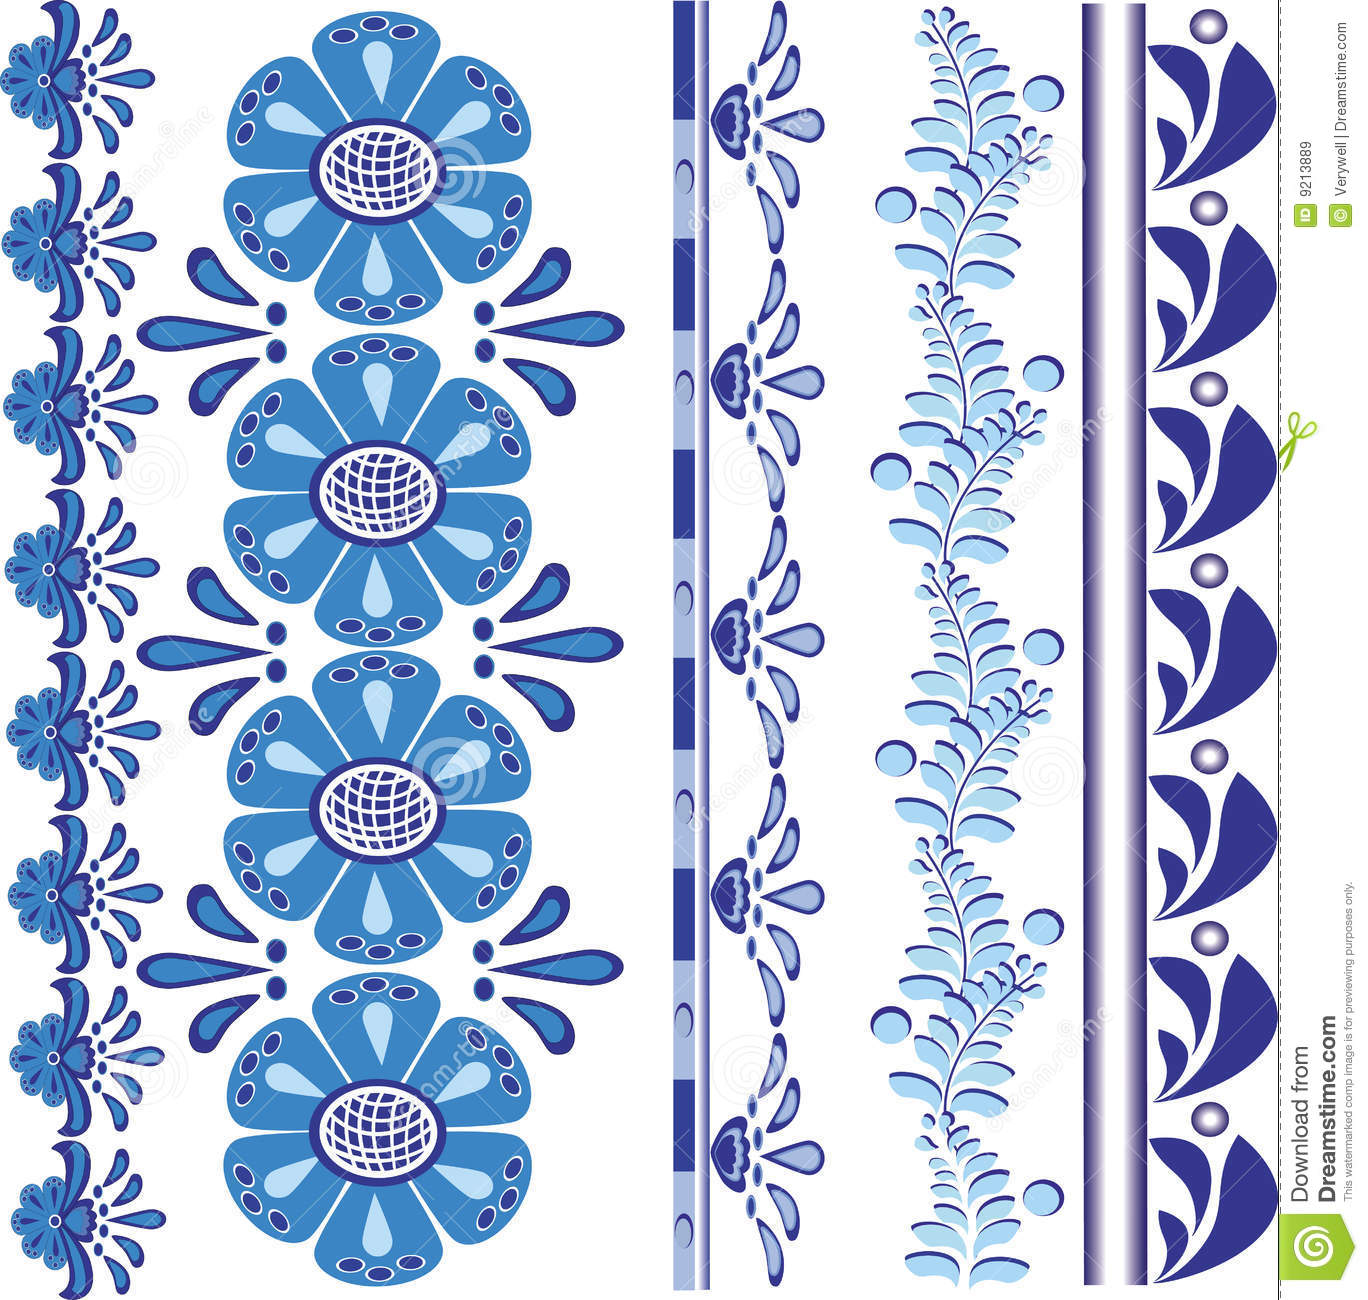 14 Vector Floral Border Designs Images - Free Vector ...